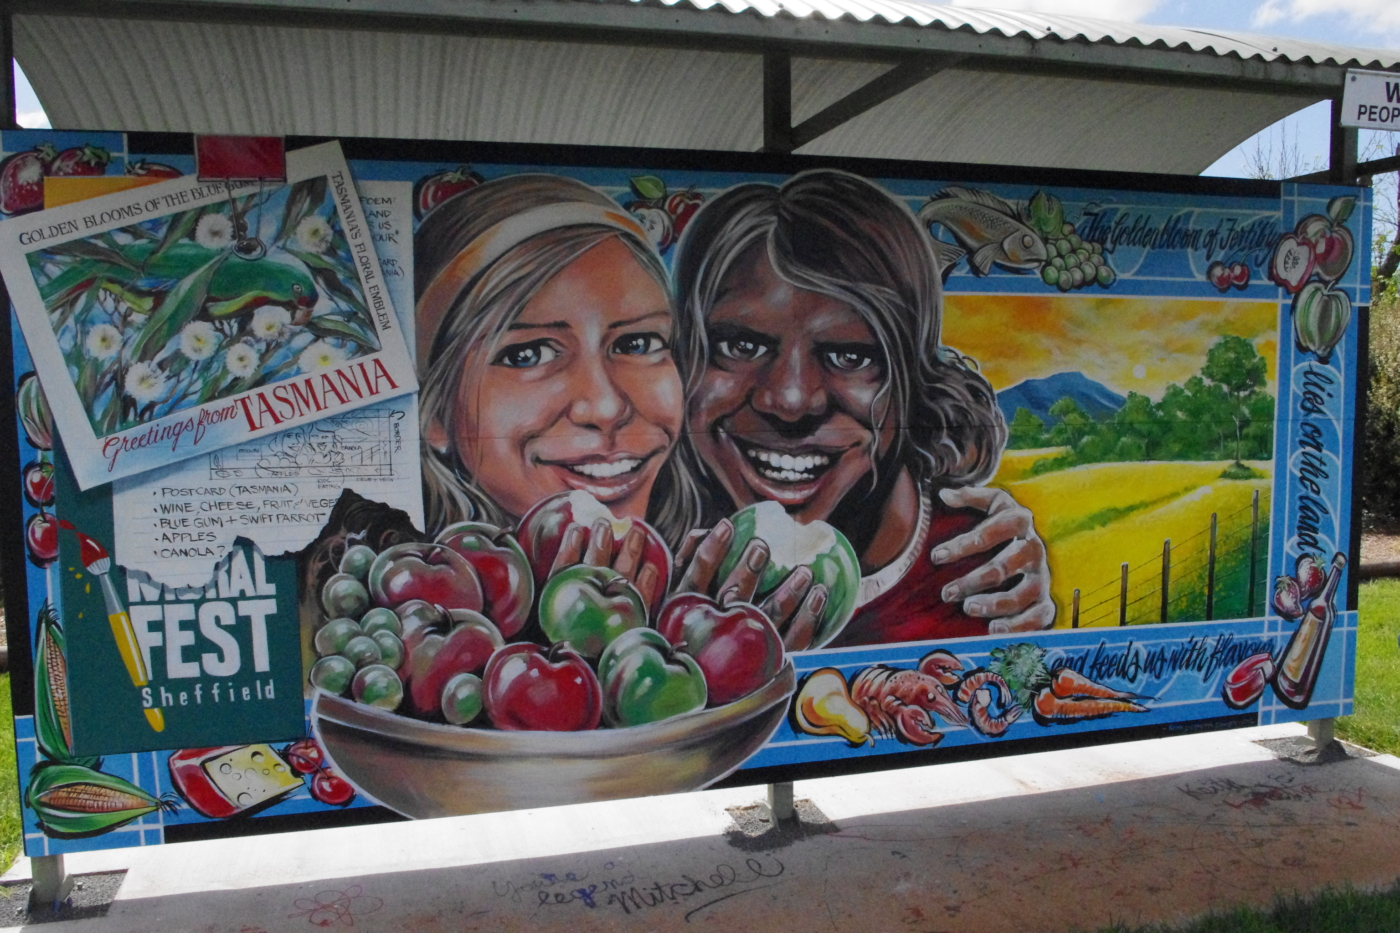 One of the many murals at Sheffield